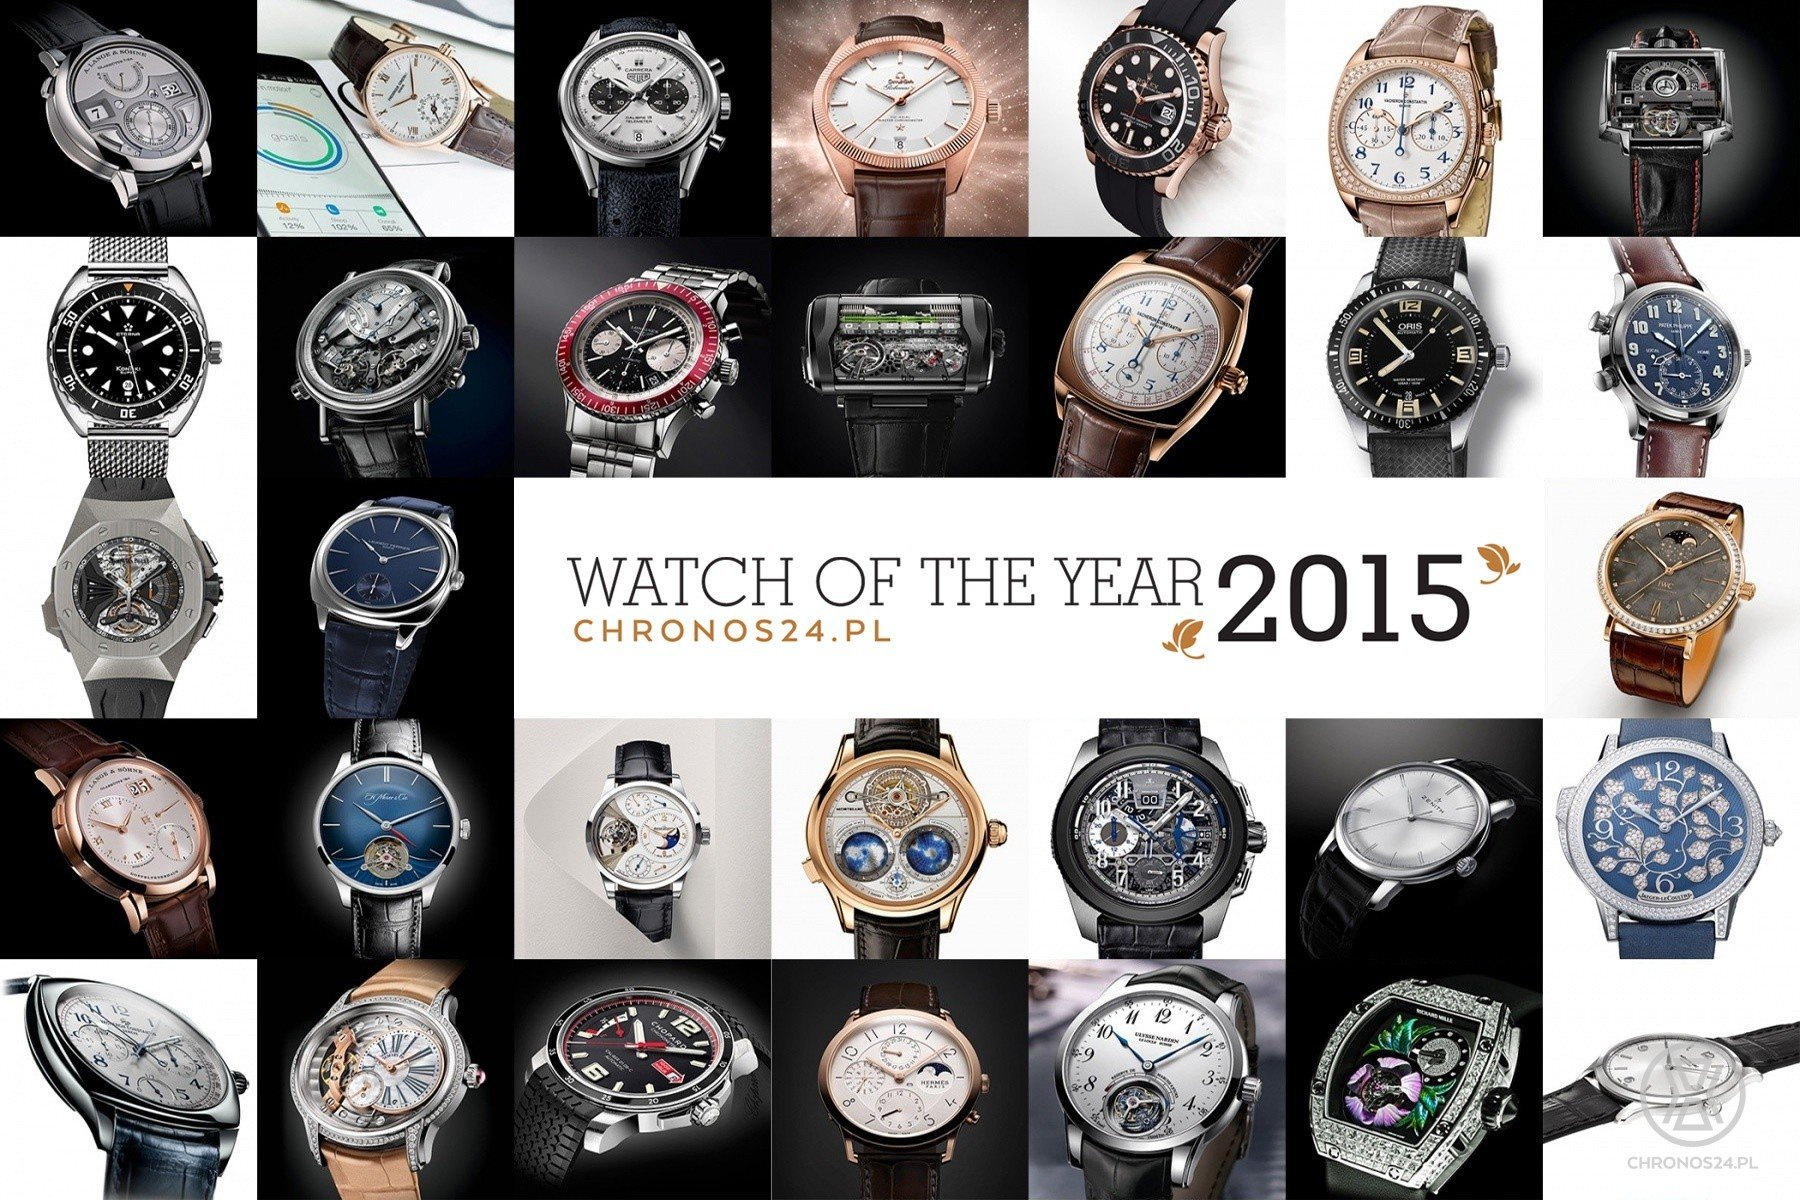 Watch of the Year 2015